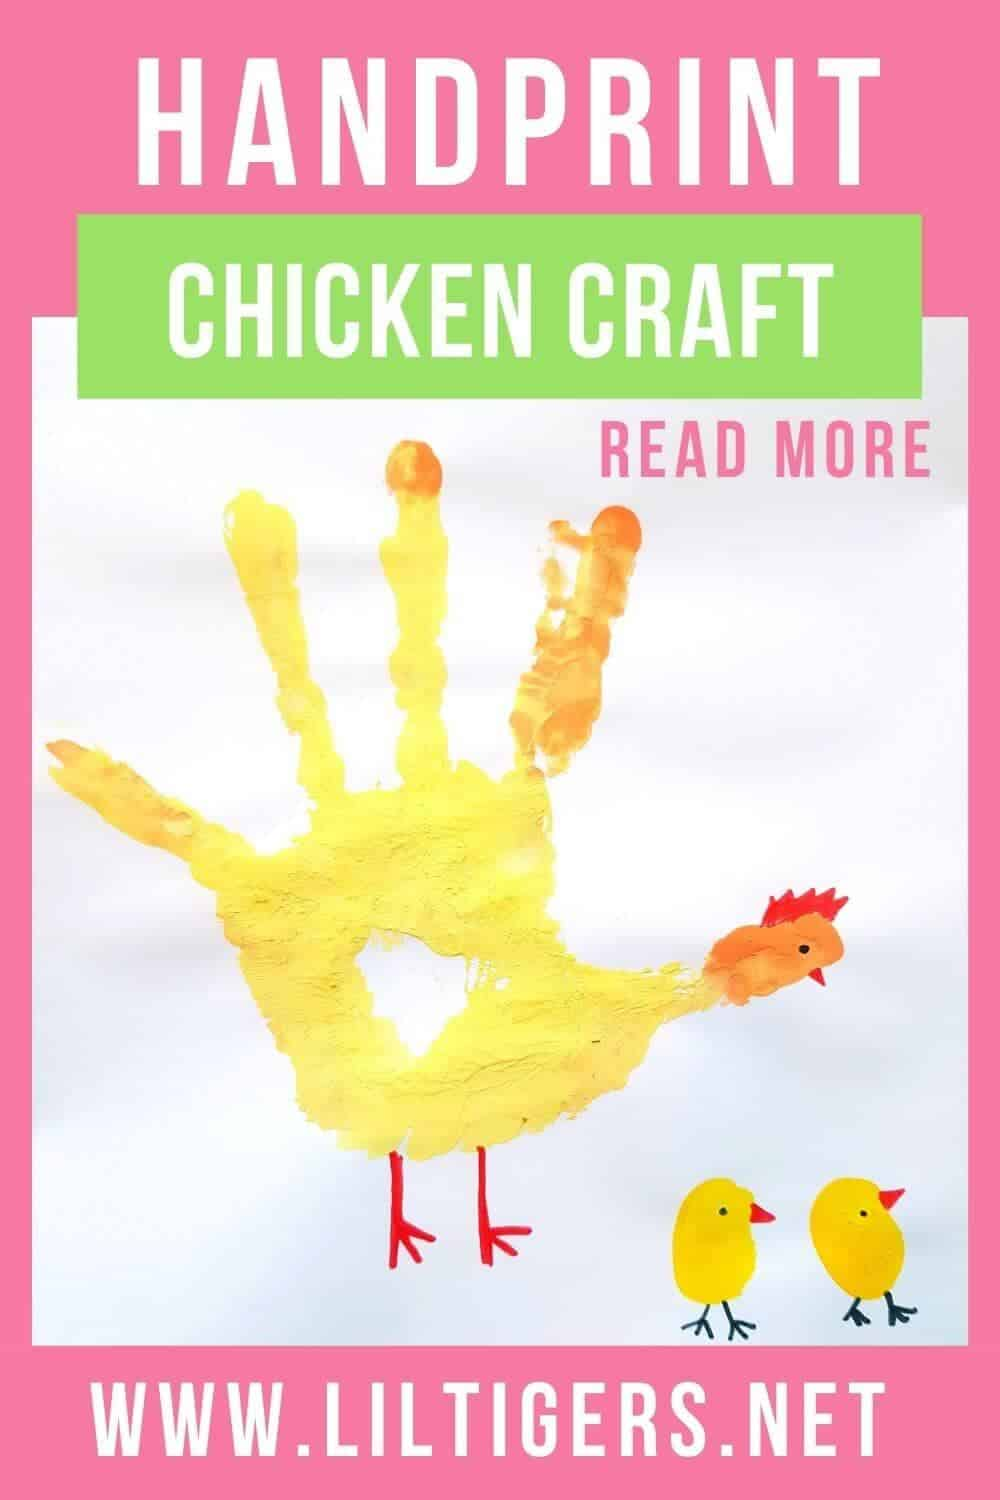 How to Make Your Own Handprint Chicken Craft for Kids